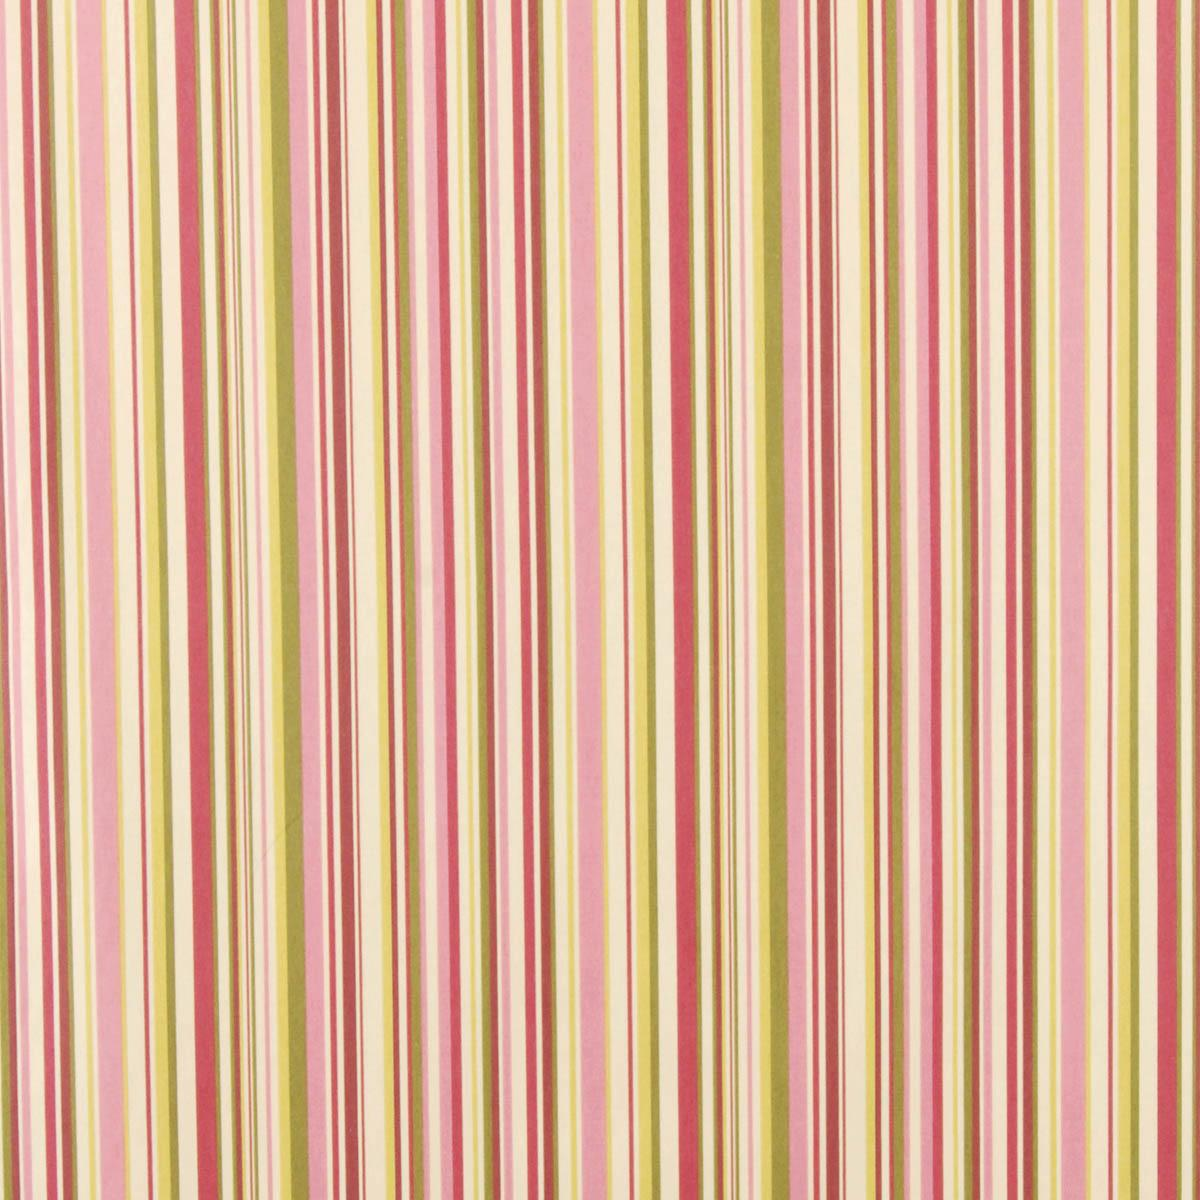 Kitchen Curtains Fabric Curtains Fabric Stripe Drapes: Fuschia Goa Stripe Curtain Fabric